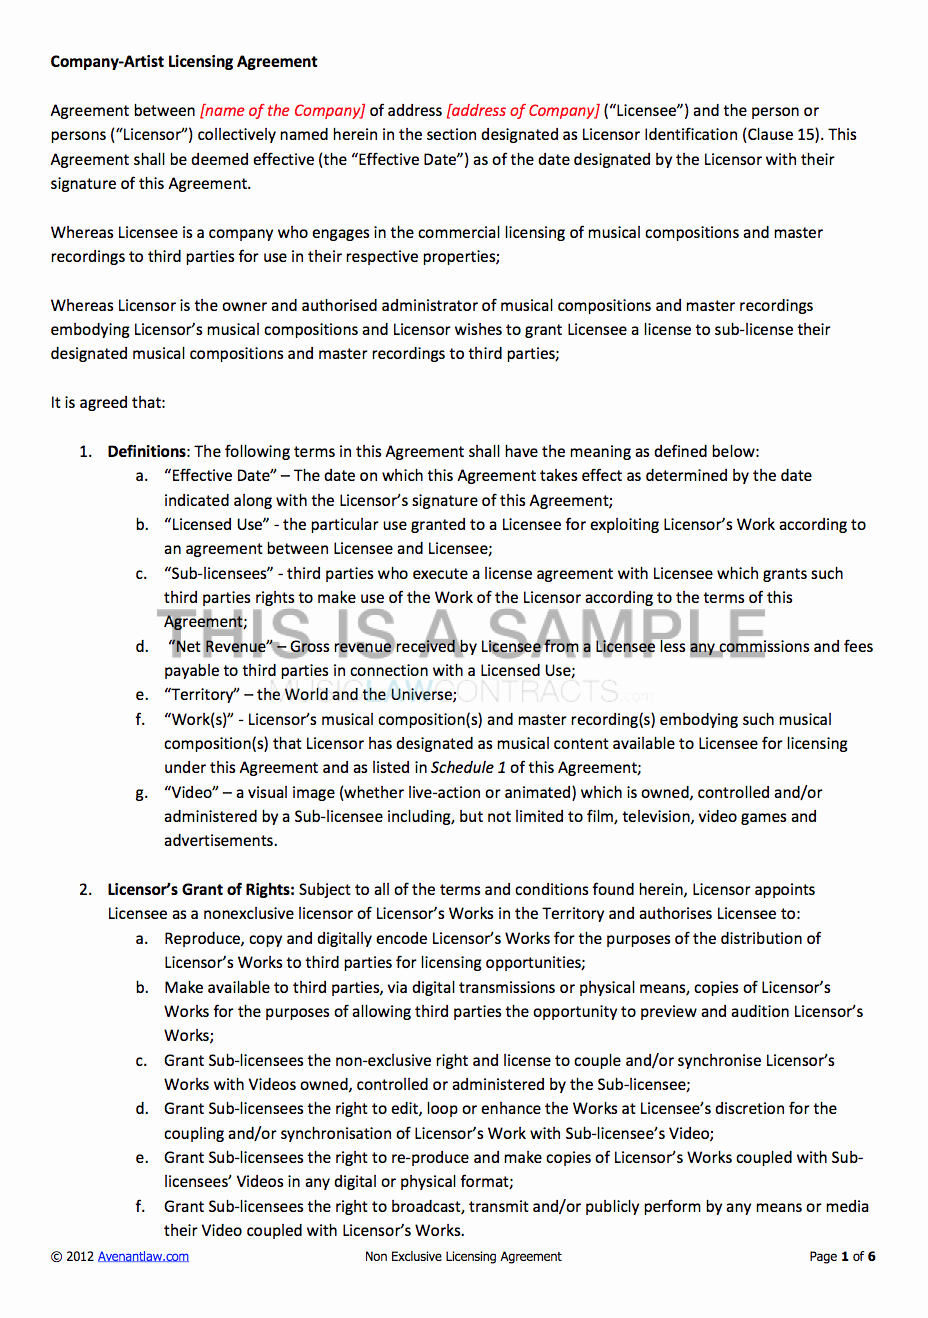 Product Licensing Agreement Template Beautiful Non Exclusive Licensing Contract Template